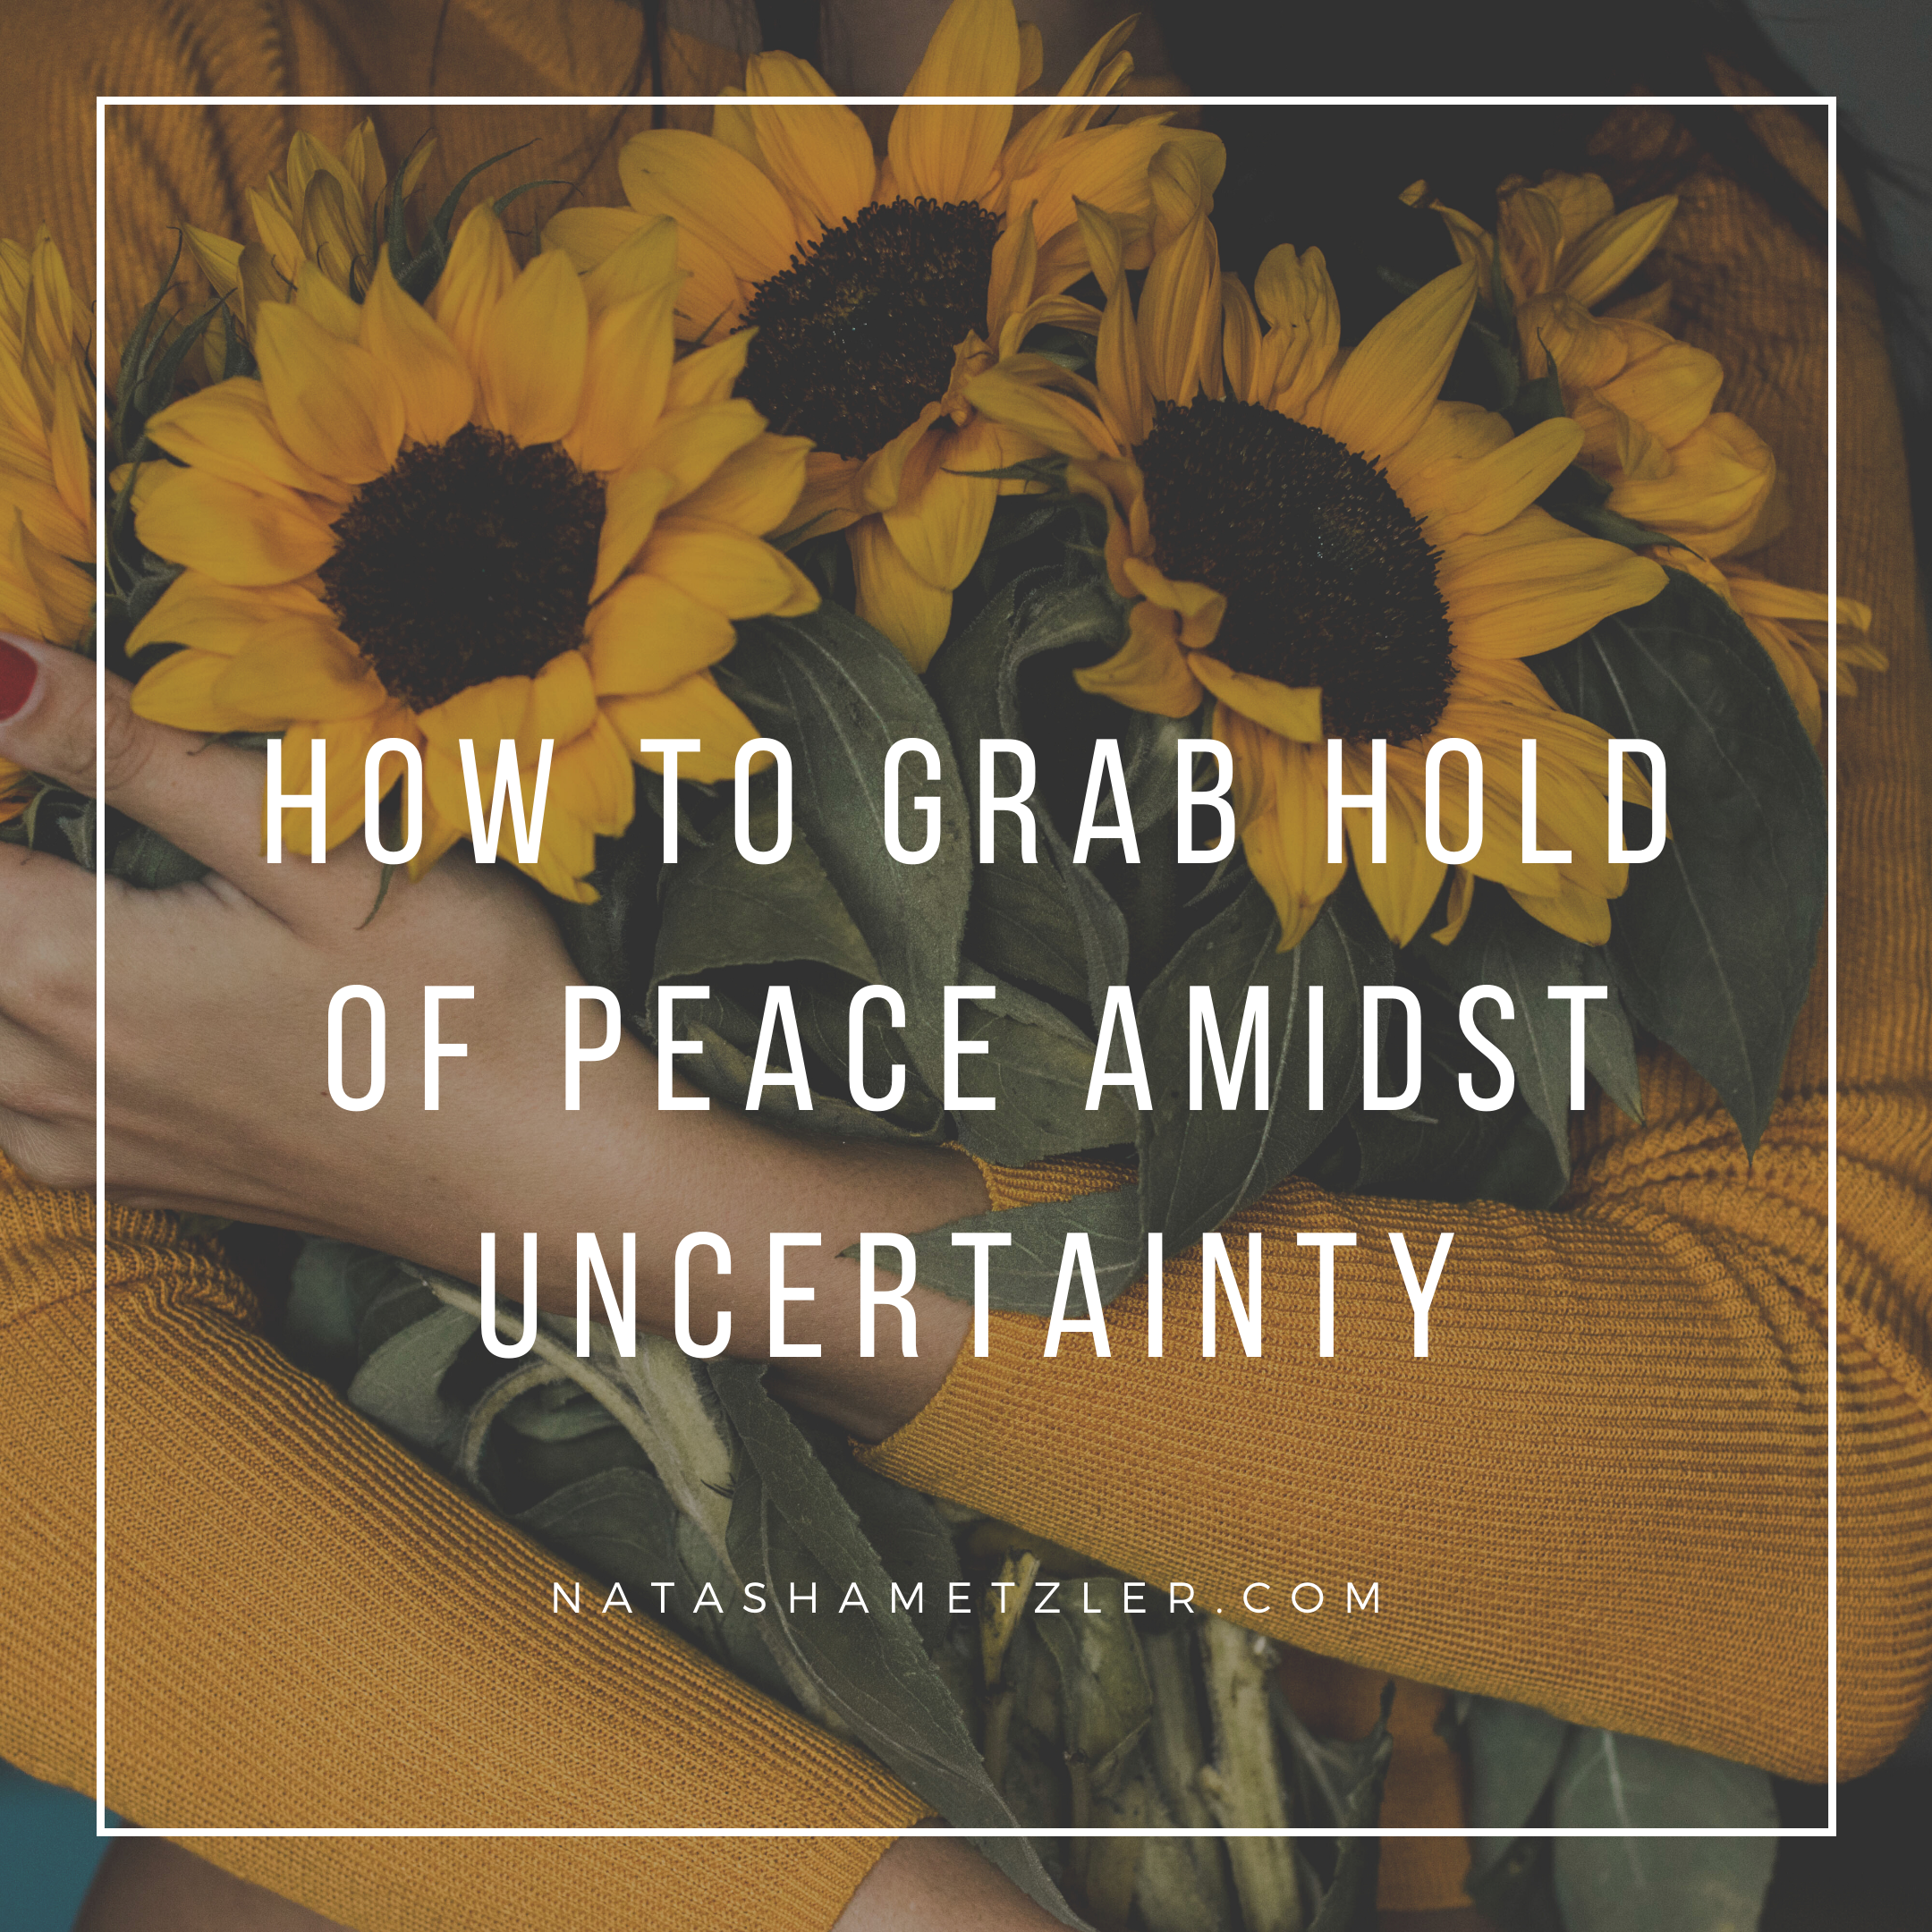 How to Grab Hold of Peace Amidst Uncertainty